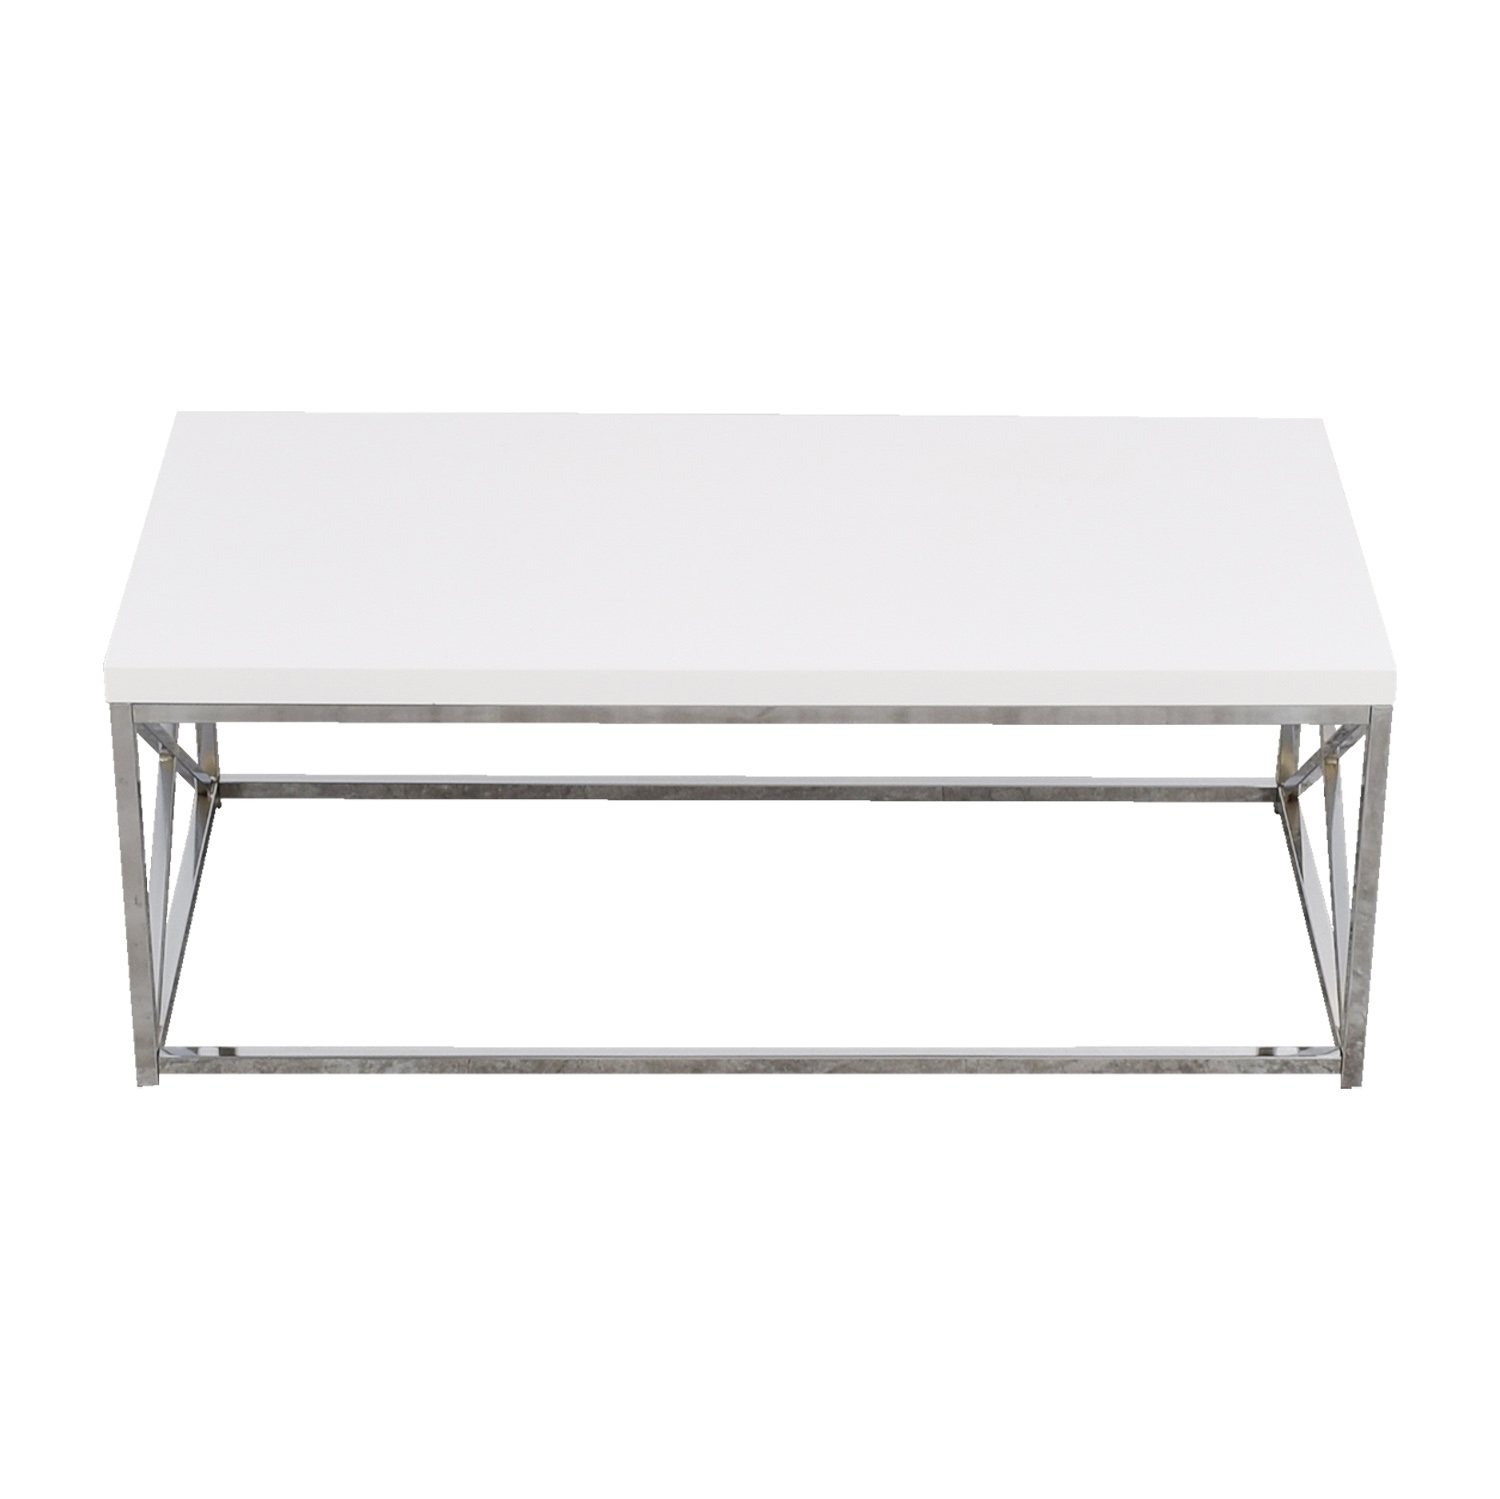 51 Off White Top With Chrome Base Coffee Table Tables